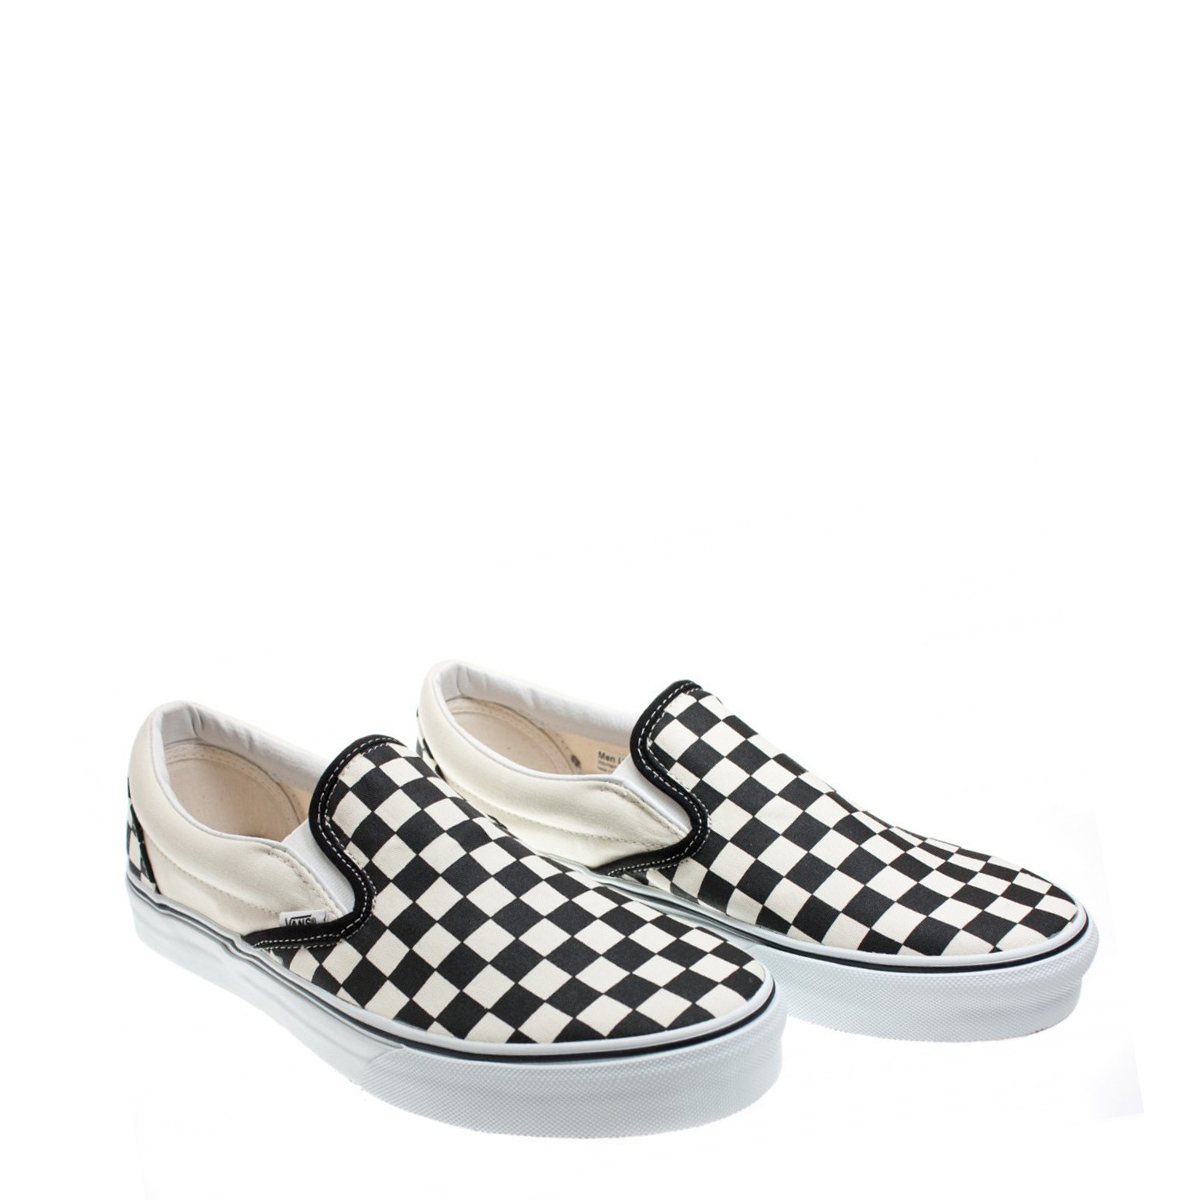 Vans Unisex Trainers, Classic, Slip On, Leather or Canvas, Low Top, Casual Shoes